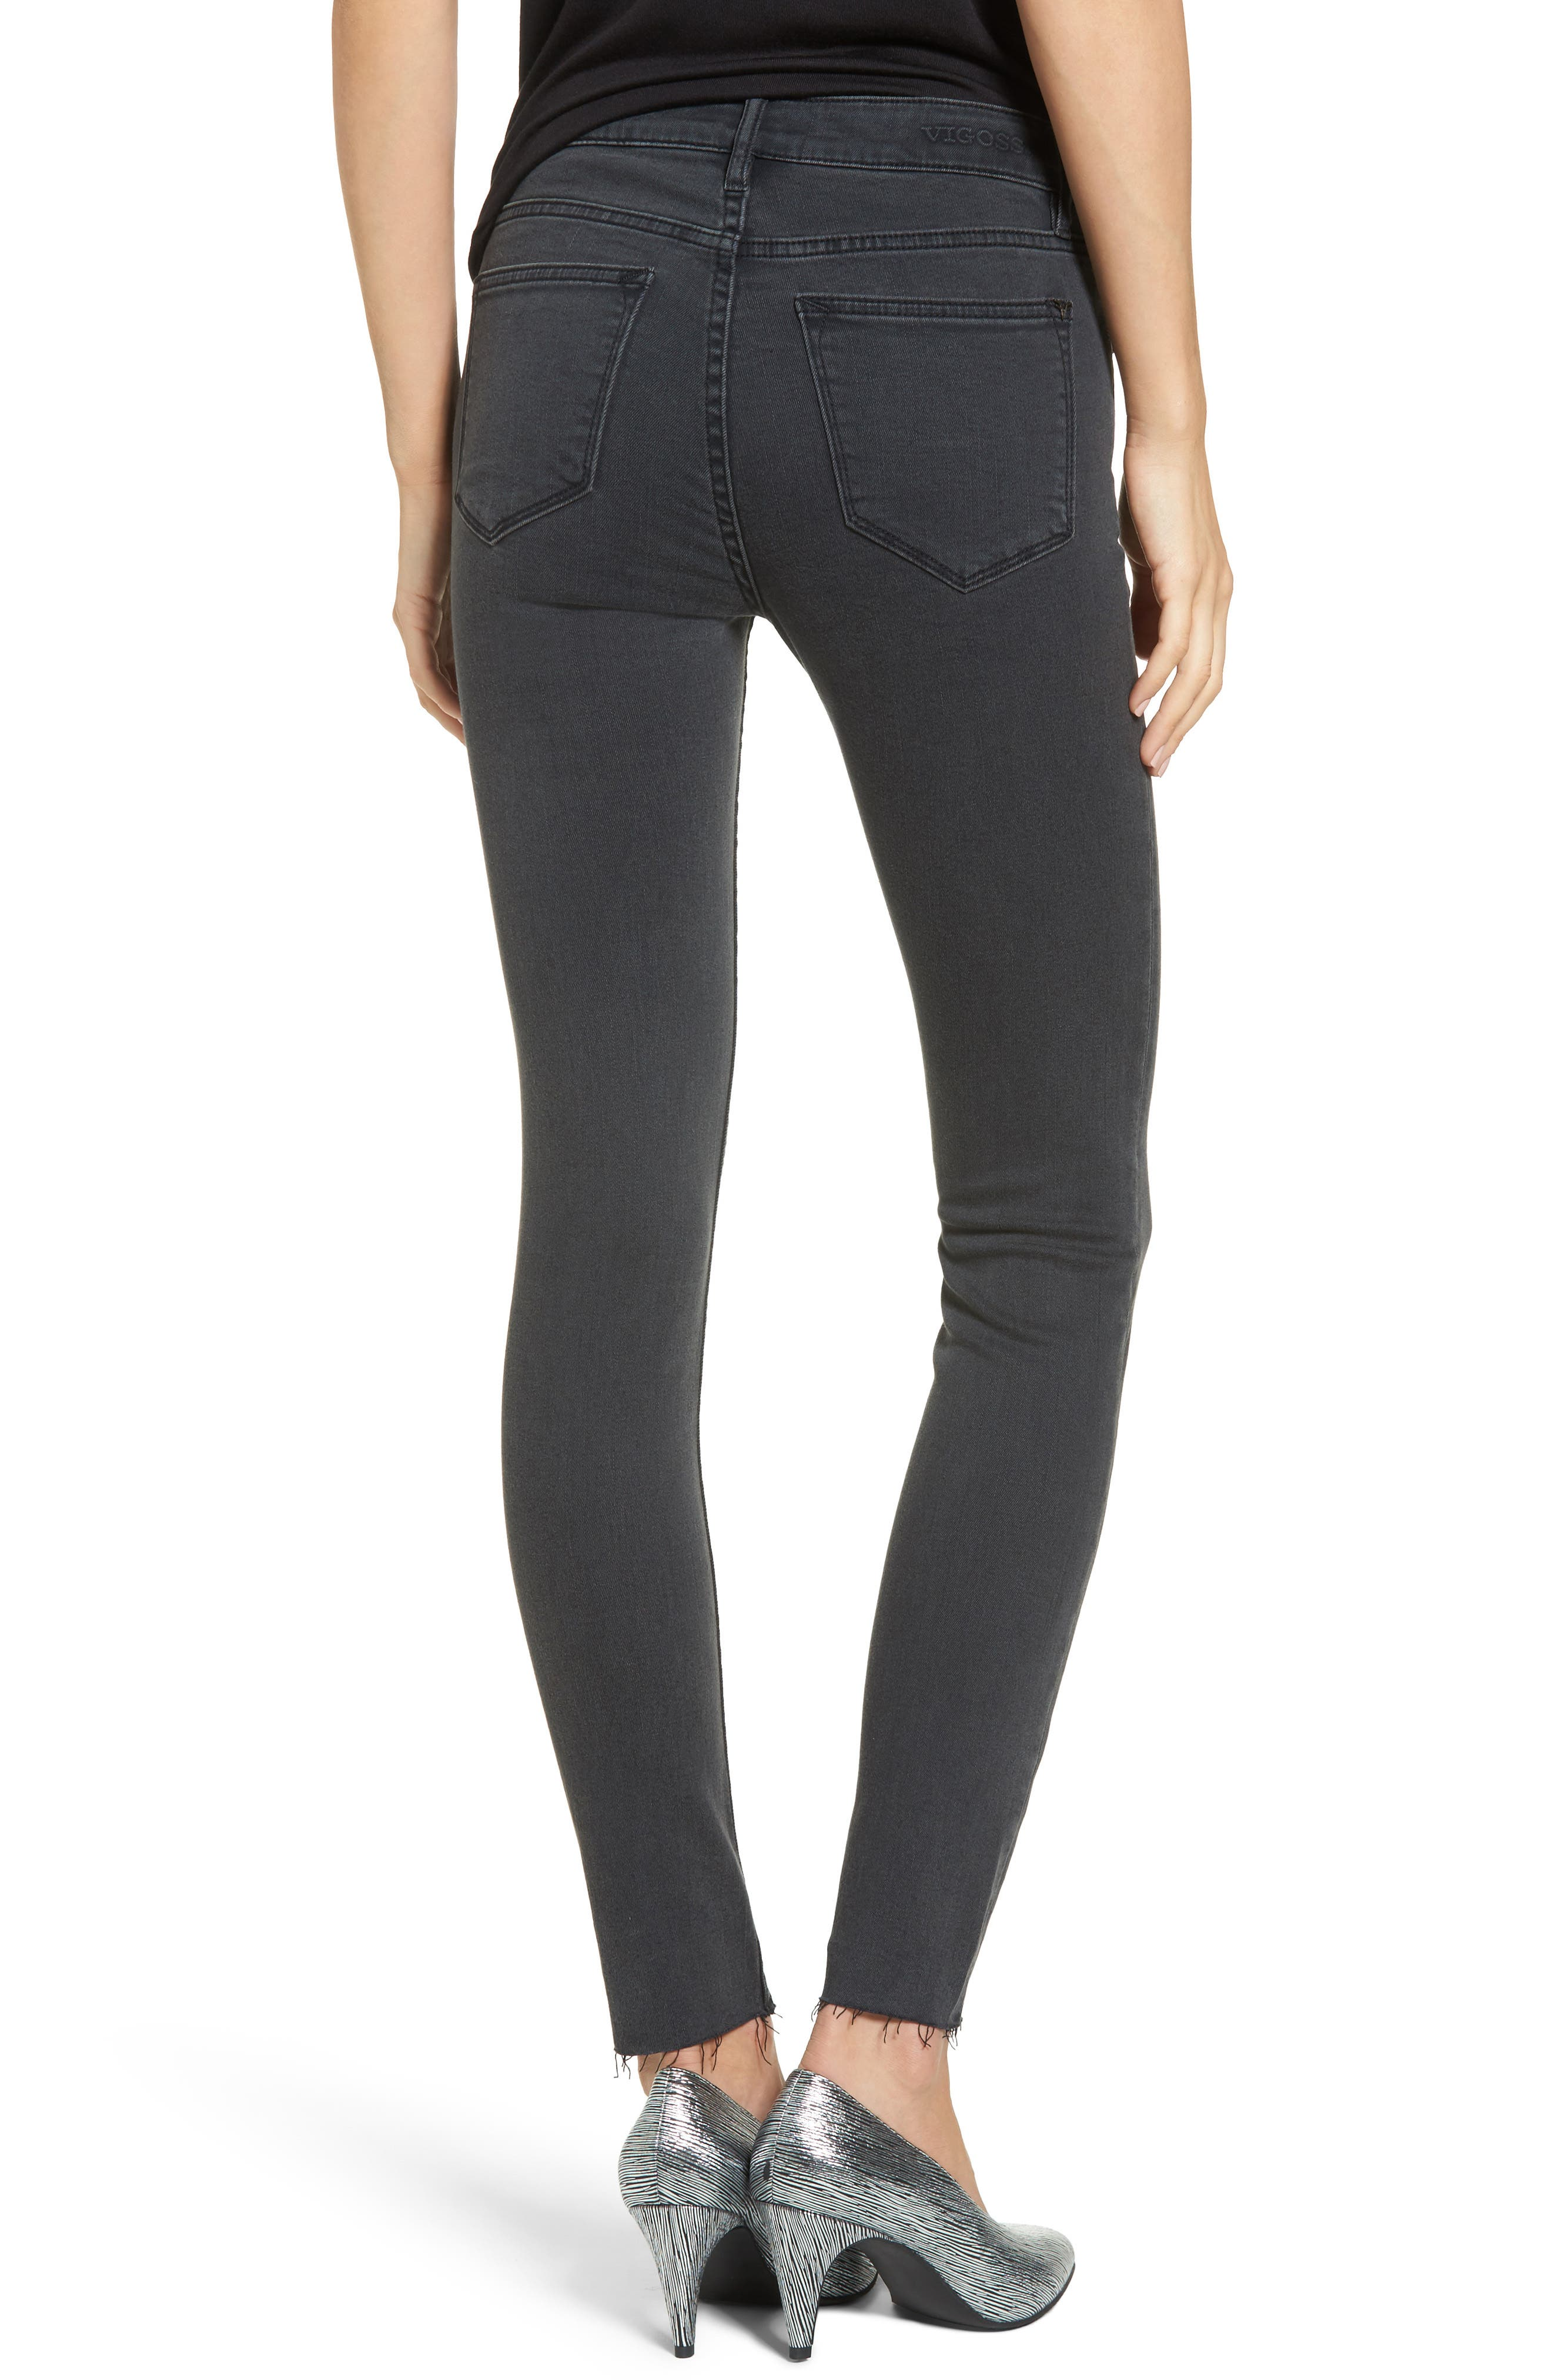 Jagger Front Seam Skinny Jeans,                             Alternate thumbnail 2, color,                             006